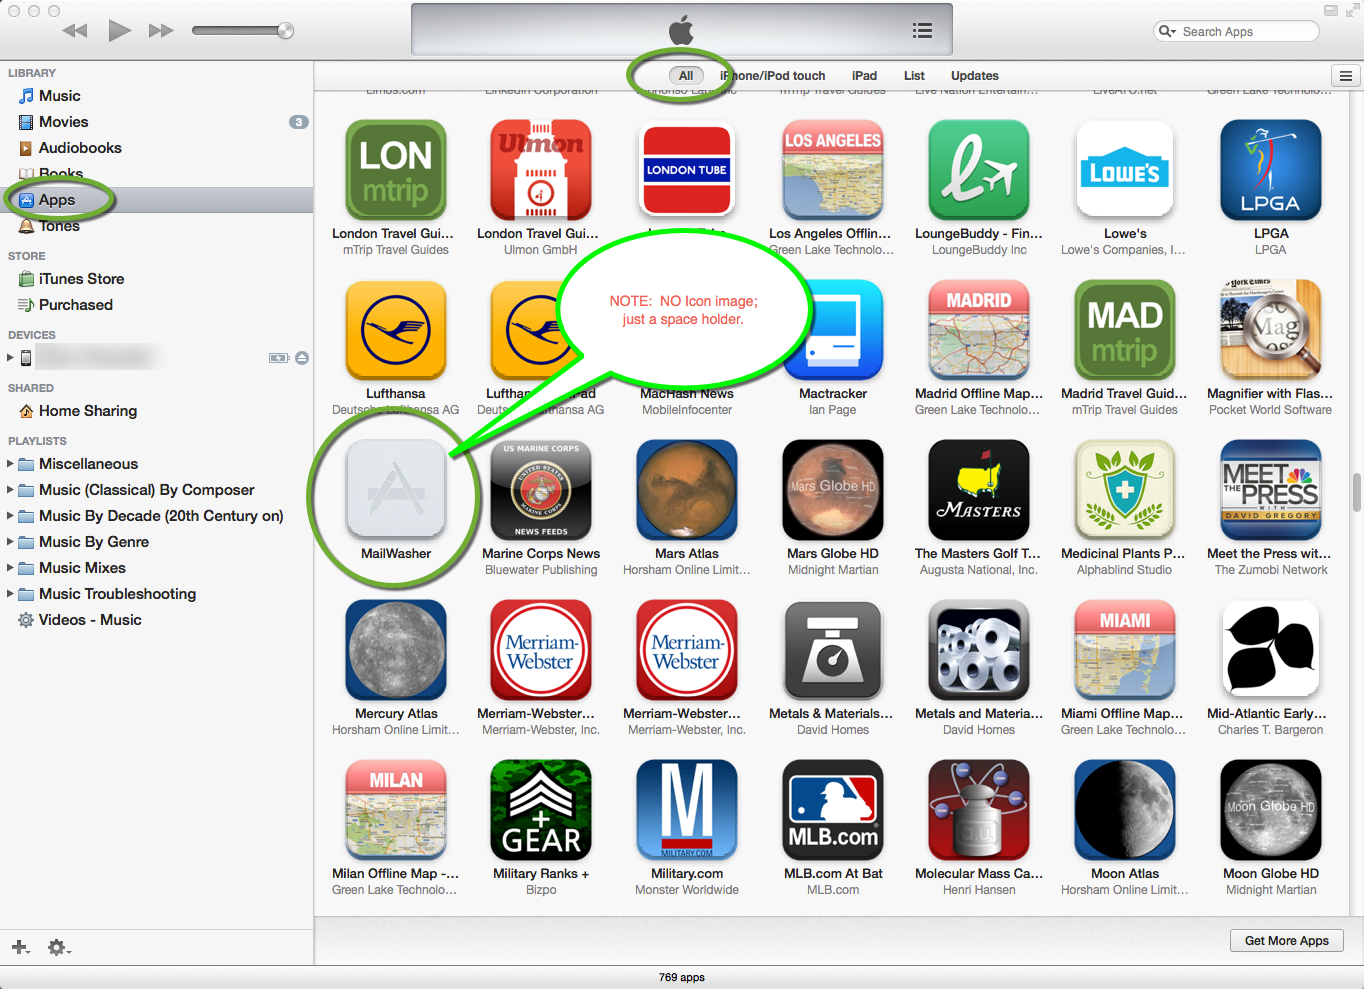 MacOSXiTunes_Apps-All_MissingMWMIconImageInList.png